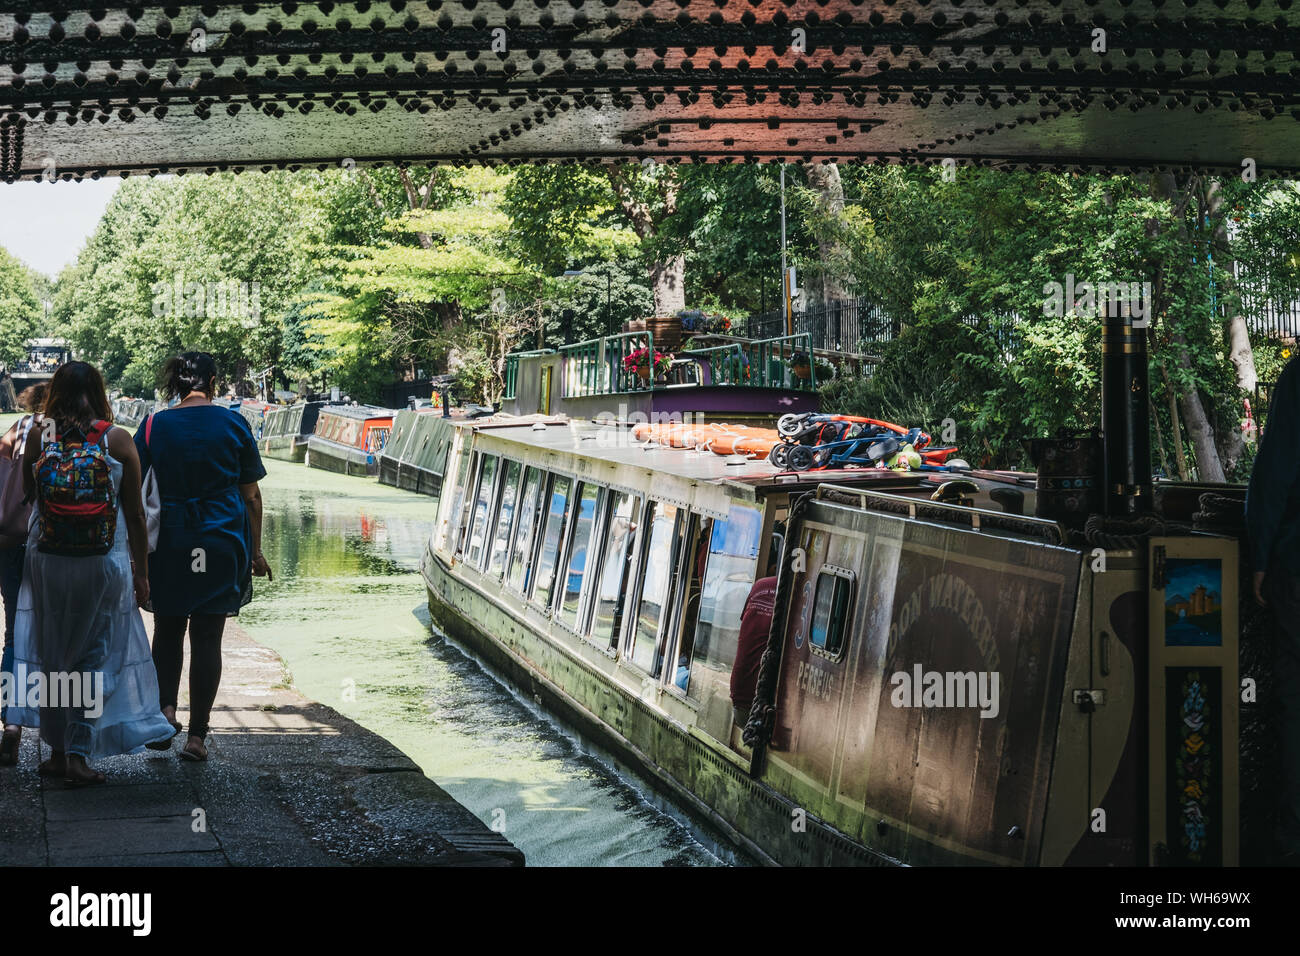 London, UK - July 18, 2019: People and tour boat passing under the bridge on Regents Canal in Little Venice, London, a tranquil area of the city where Stock Photo